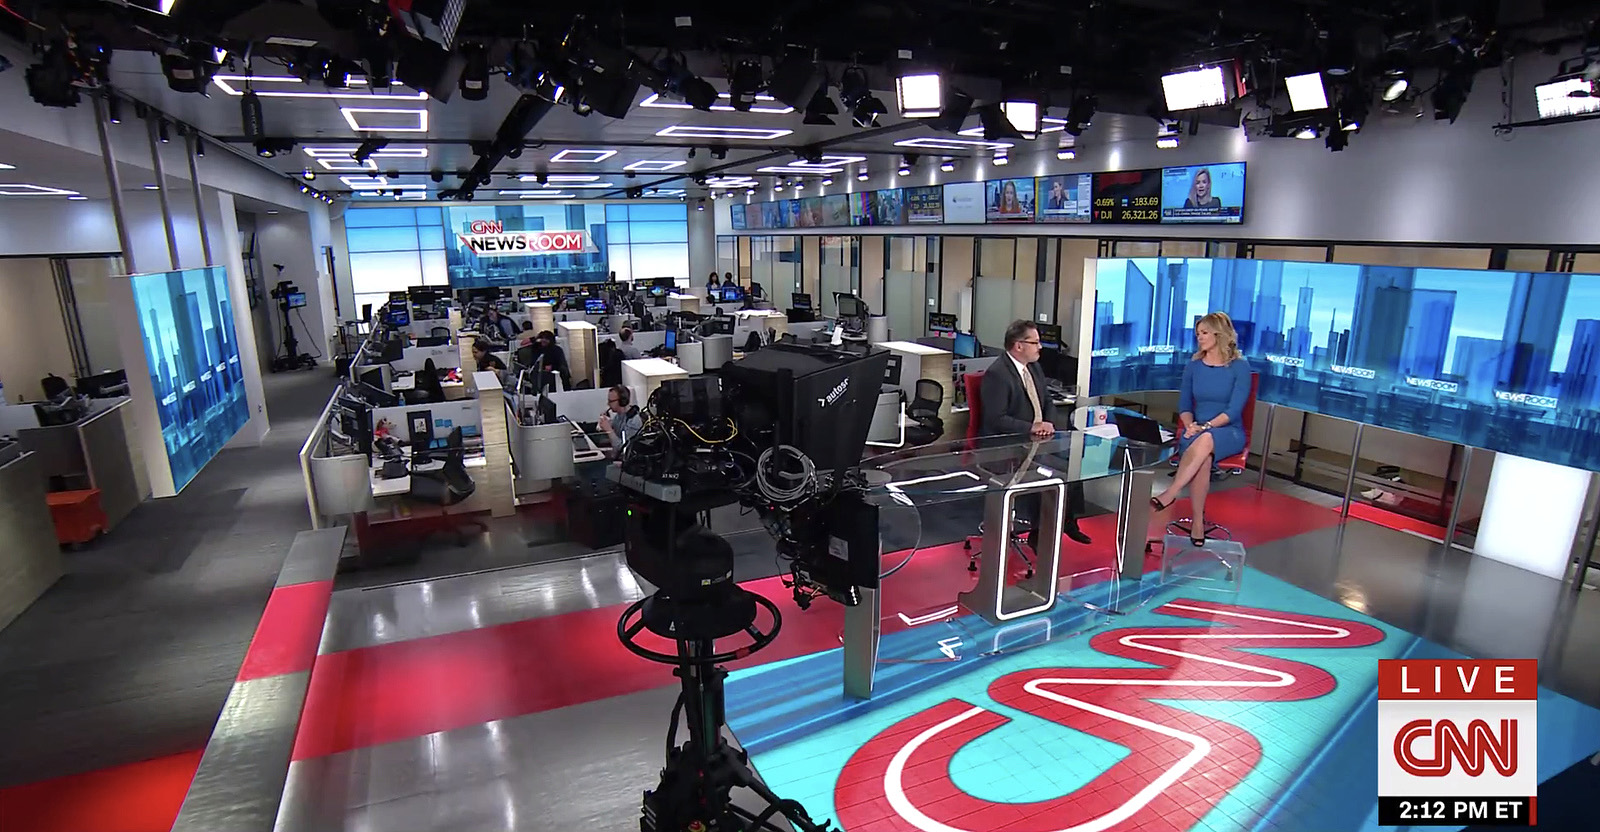 Cnn Studio 17n Broadcast Set Design Gallery